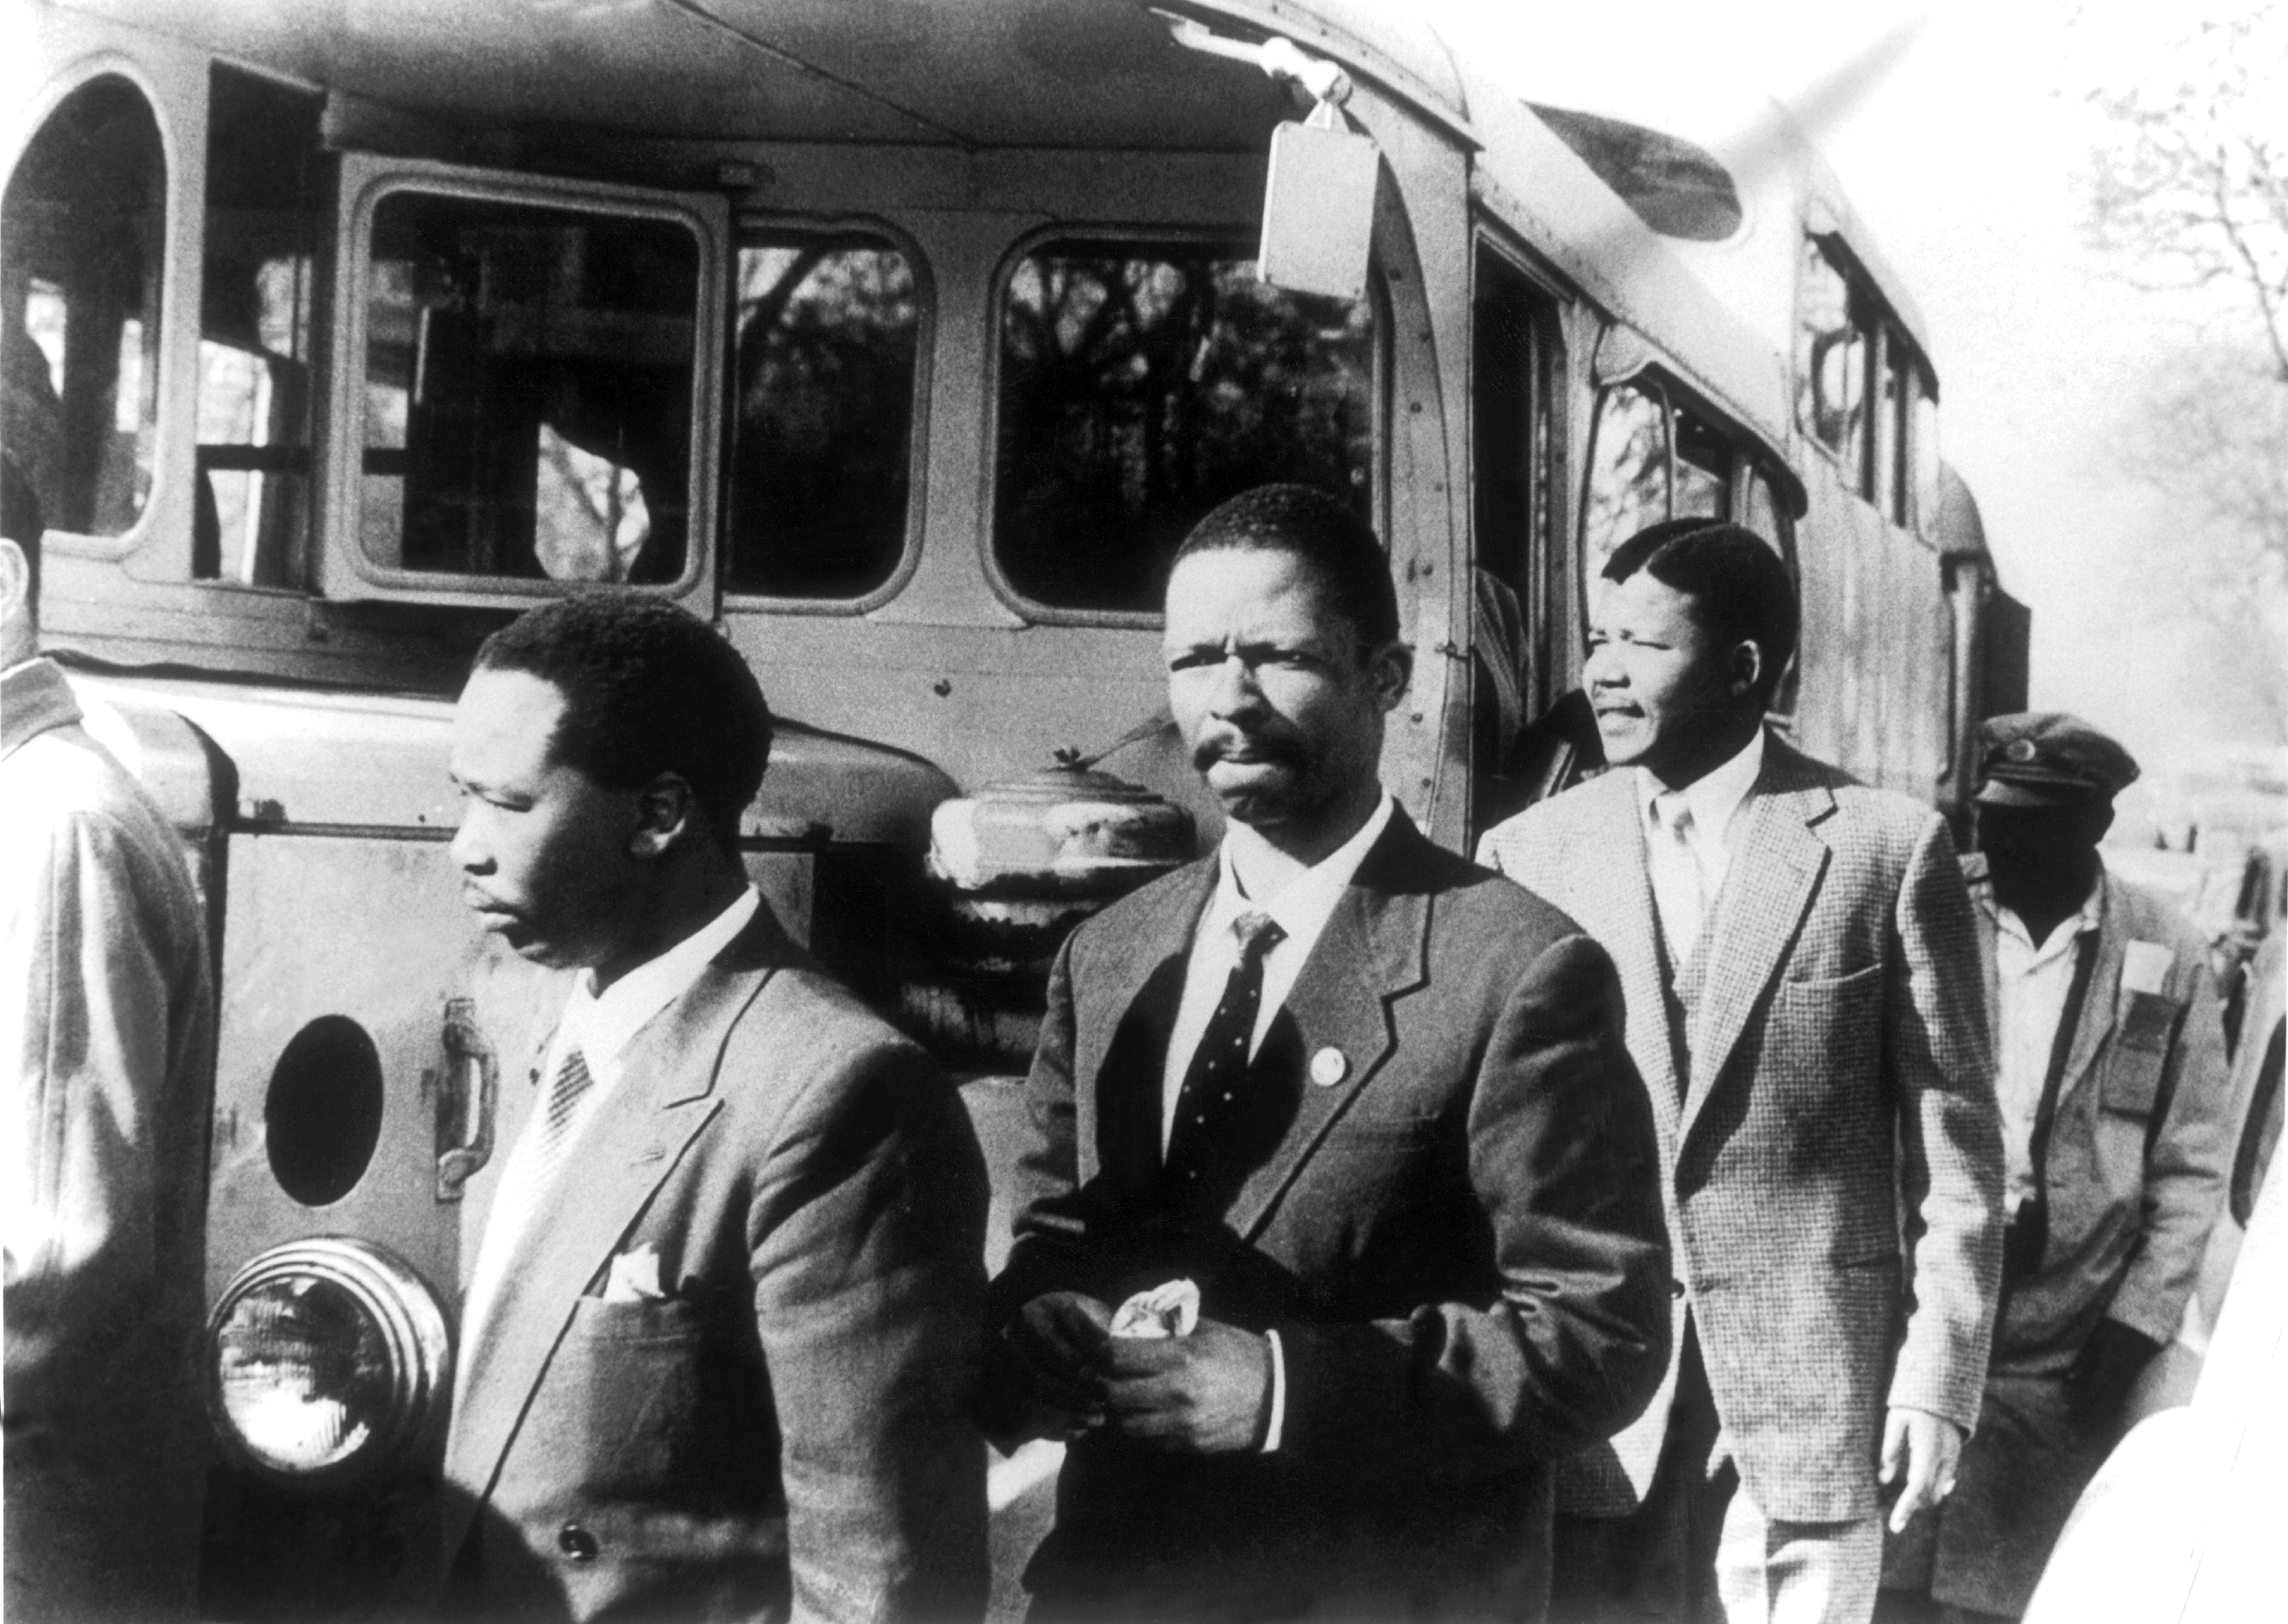 Mandela and other co-defendants appear at the famous Treason Trial in Johannesburg, 1956. Mandela, along with his longtime ally Oliver Thambo and 154 others, was charged with treason. The case, which dragged on for five years, by which time all were acquitted, brought the struggle of the ANC to international attention.